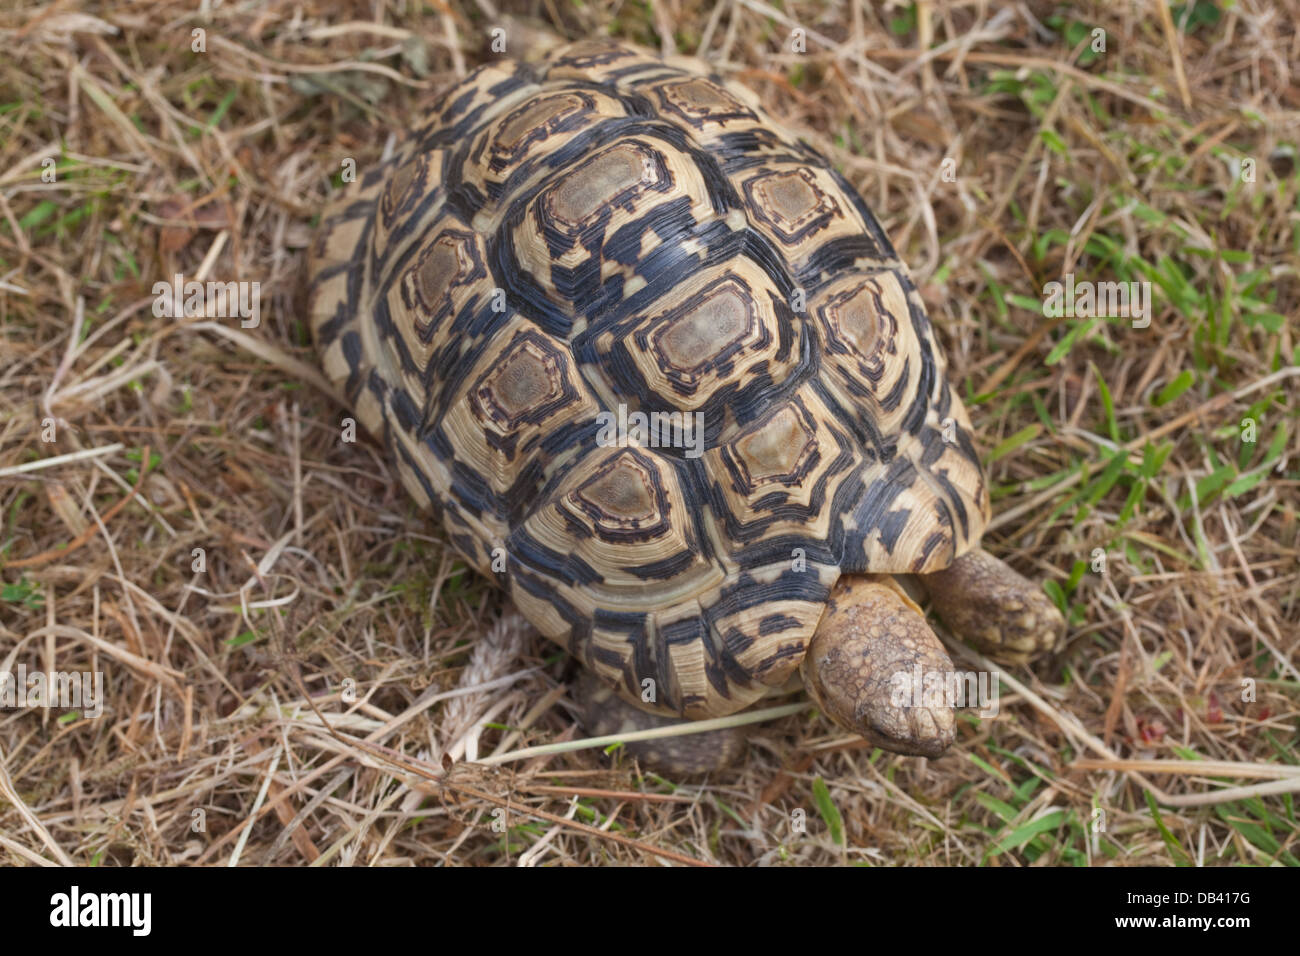 Leopard Tortoise (Geochelone pardalis). Carapace showing disruptive pattern of markings which break up and camouflage - Stock Image